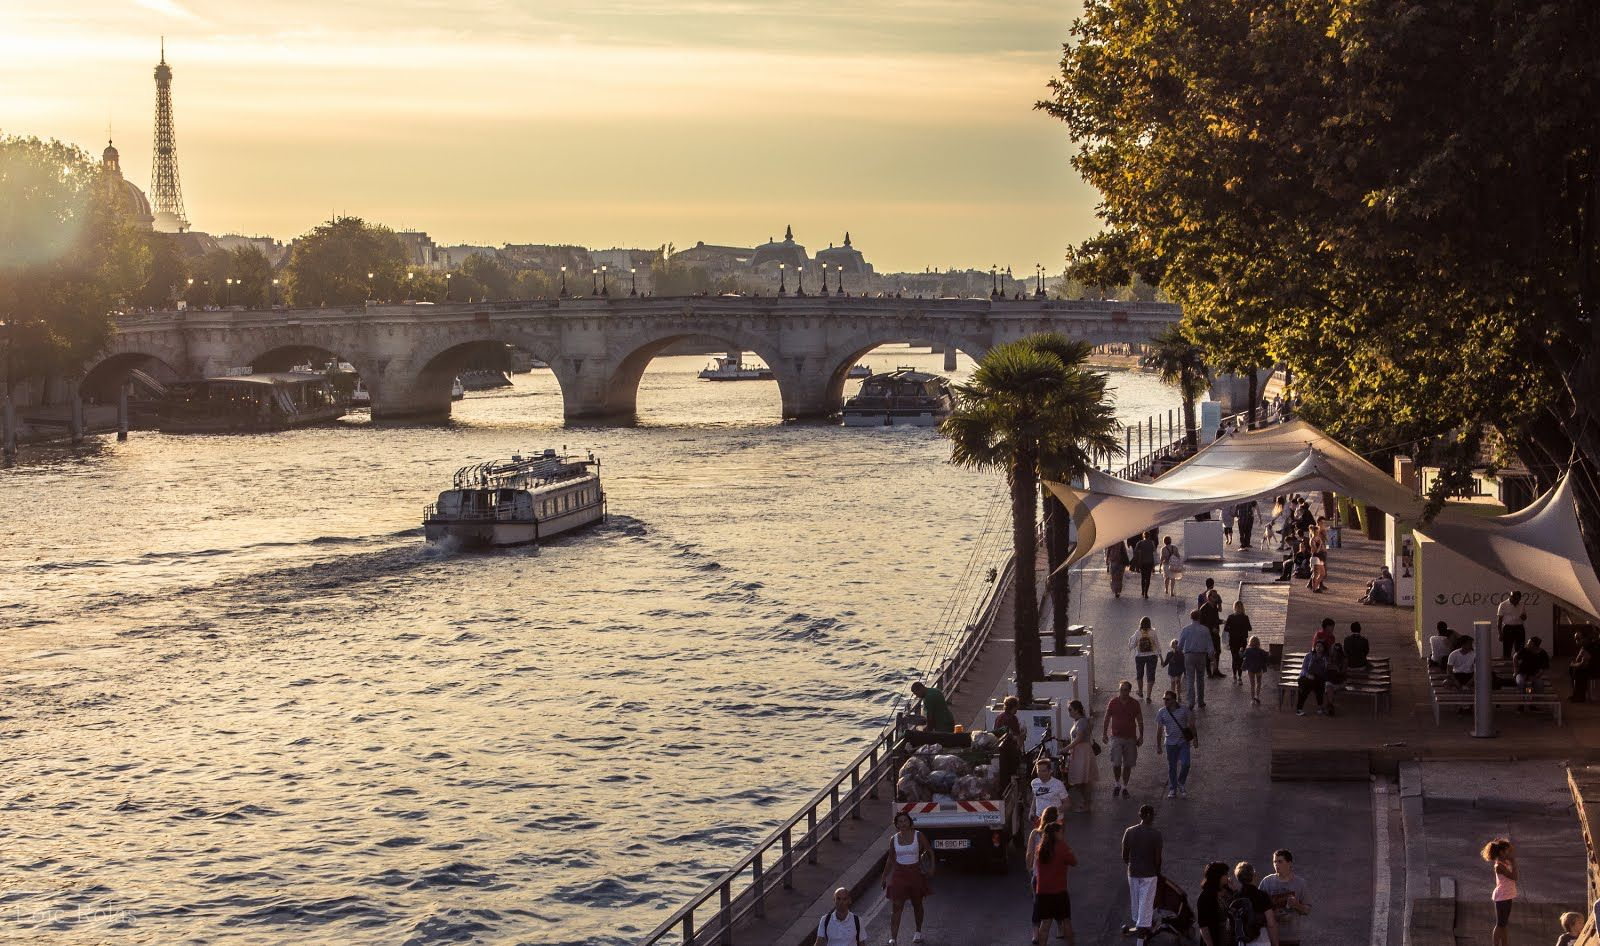 New photo in my blog: A stroll next to the #Seine river, #Paris